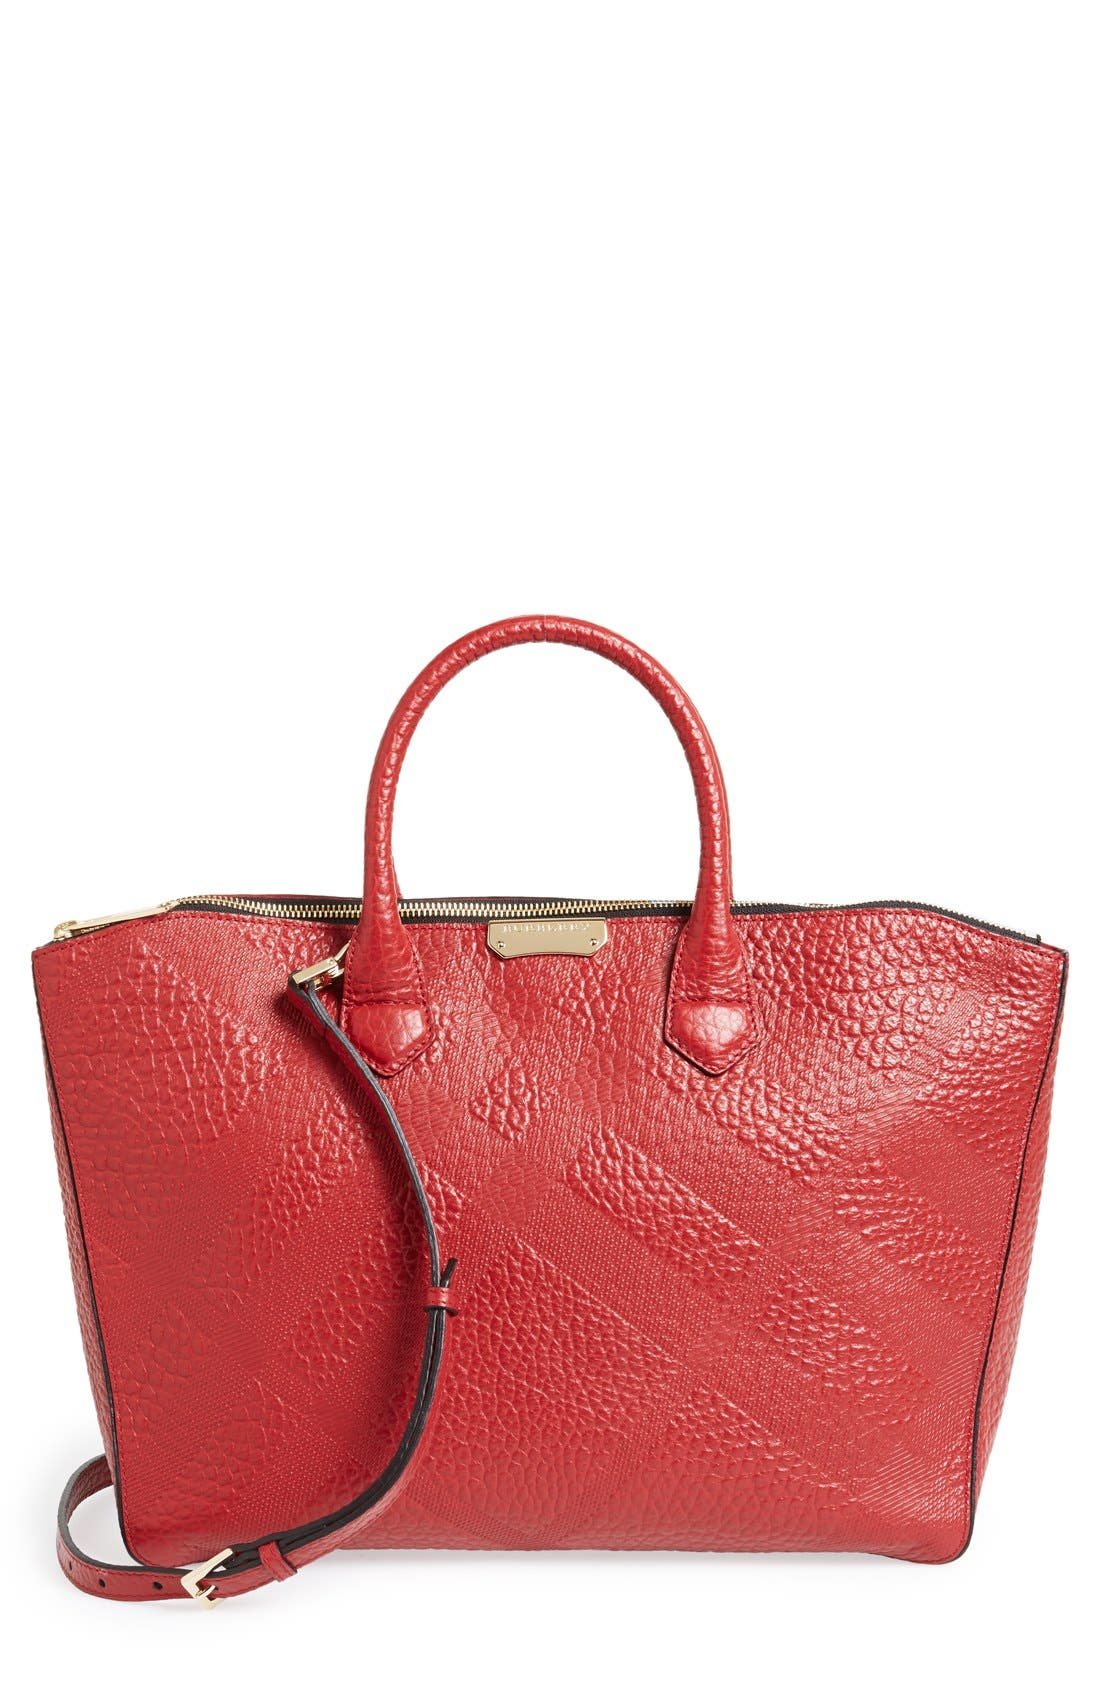 Main Image - Burberry 'Medium Dewsbury' Check Embossed Leather Tote